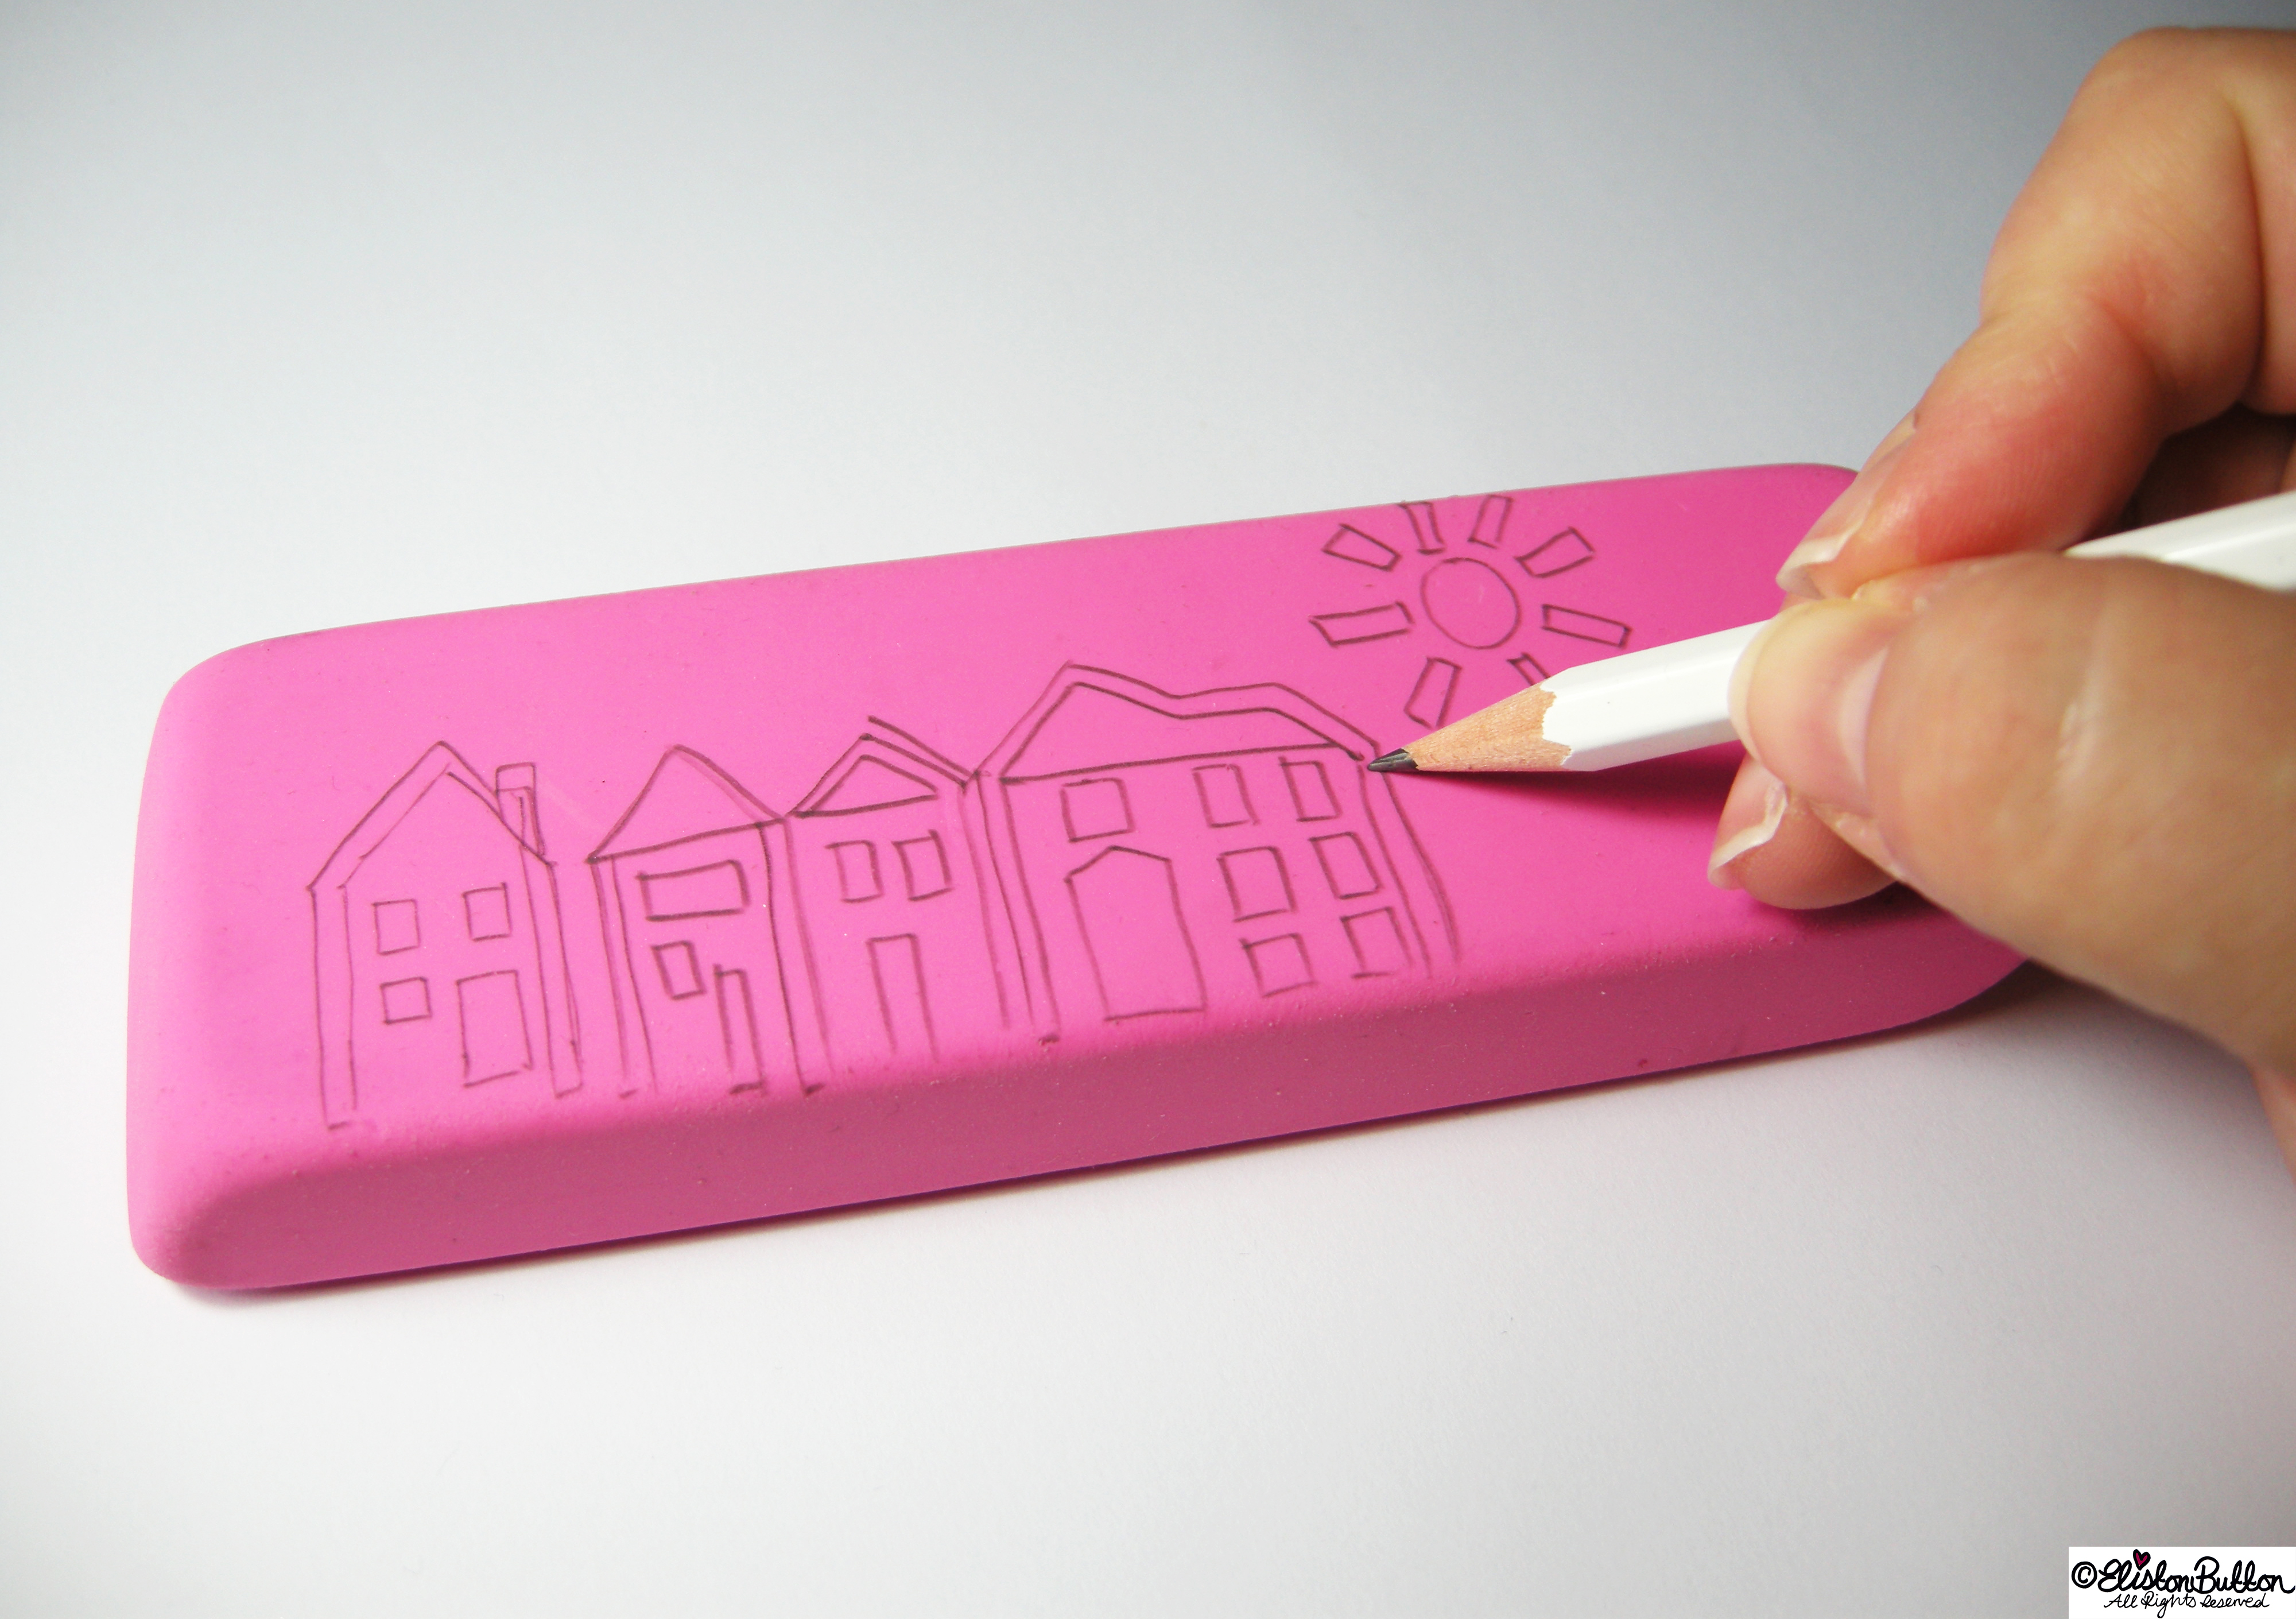 Drawing Out a Design on Rubber for Stamp Carving - Hand-Carved Streetscape Stamps at www.elistonbutton.com - Eliston Button - That Crafty Kid – Art, Design, Craft & Adventure.